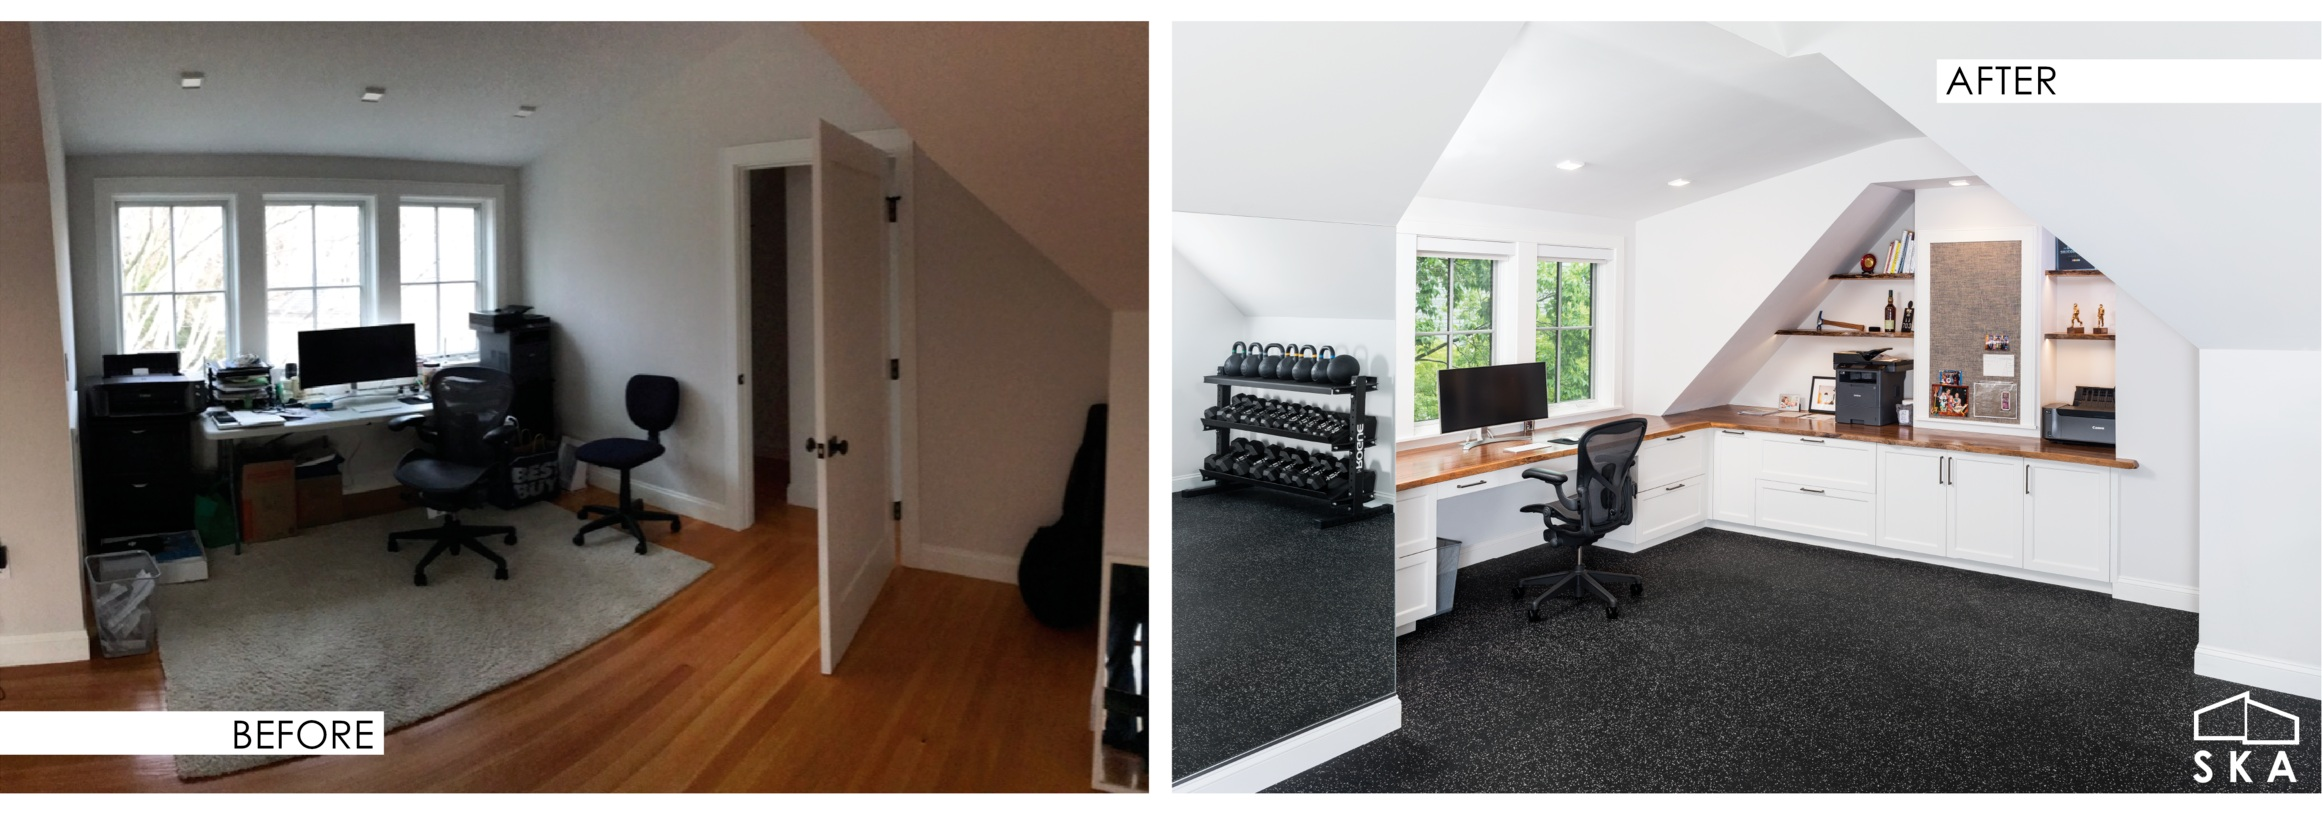 Before+After_Coolige_Attic.png